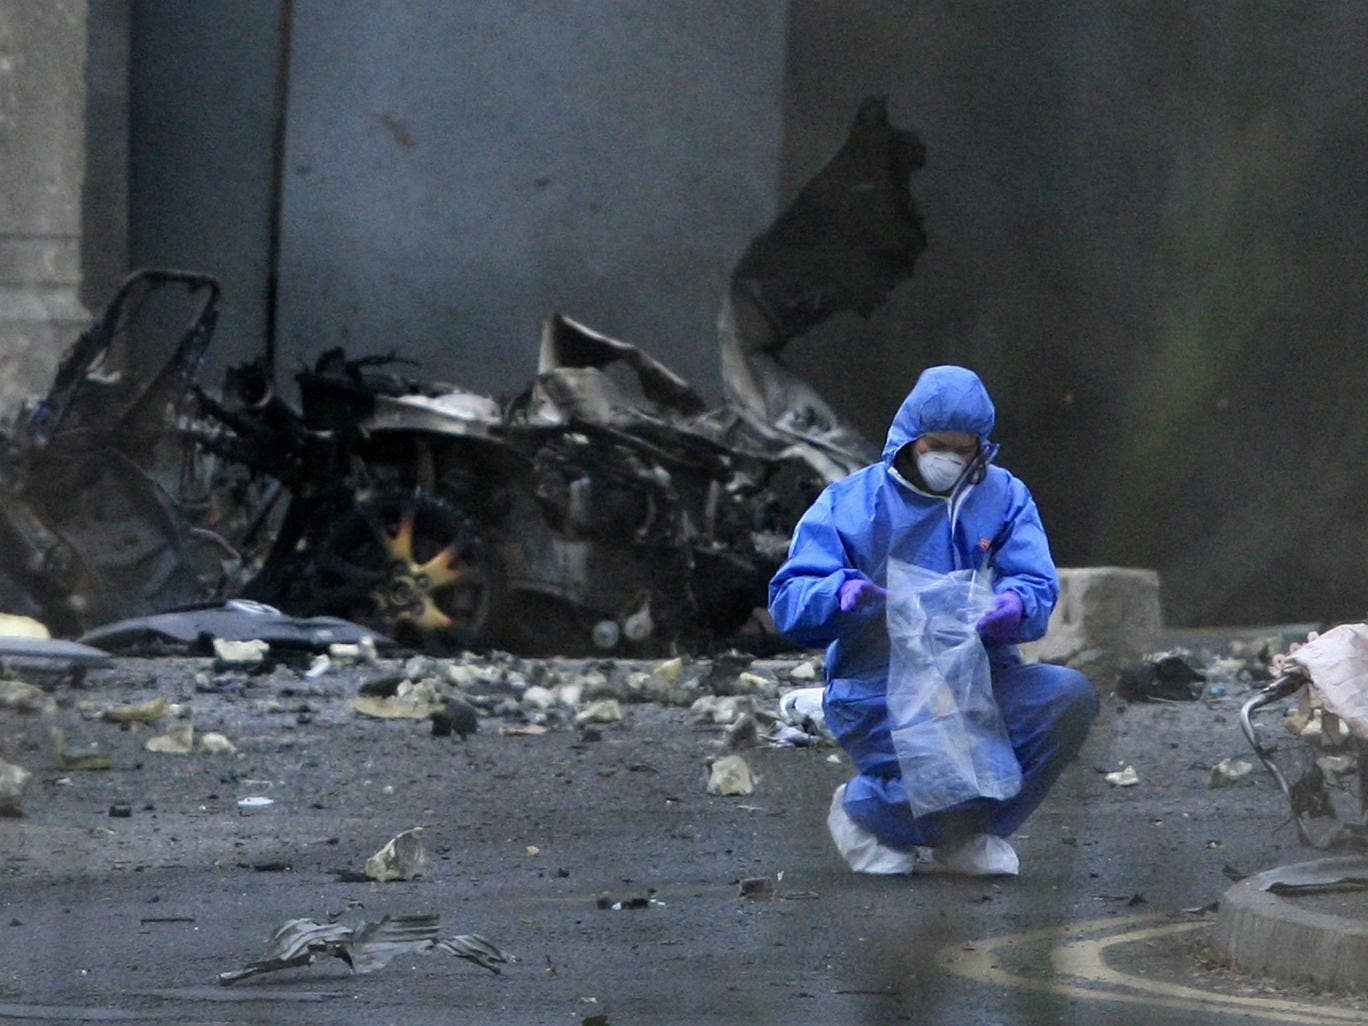 A forensics officer outside Newry courthouse after a car bomb attack in February 2010 that was blamed on dissident republicans